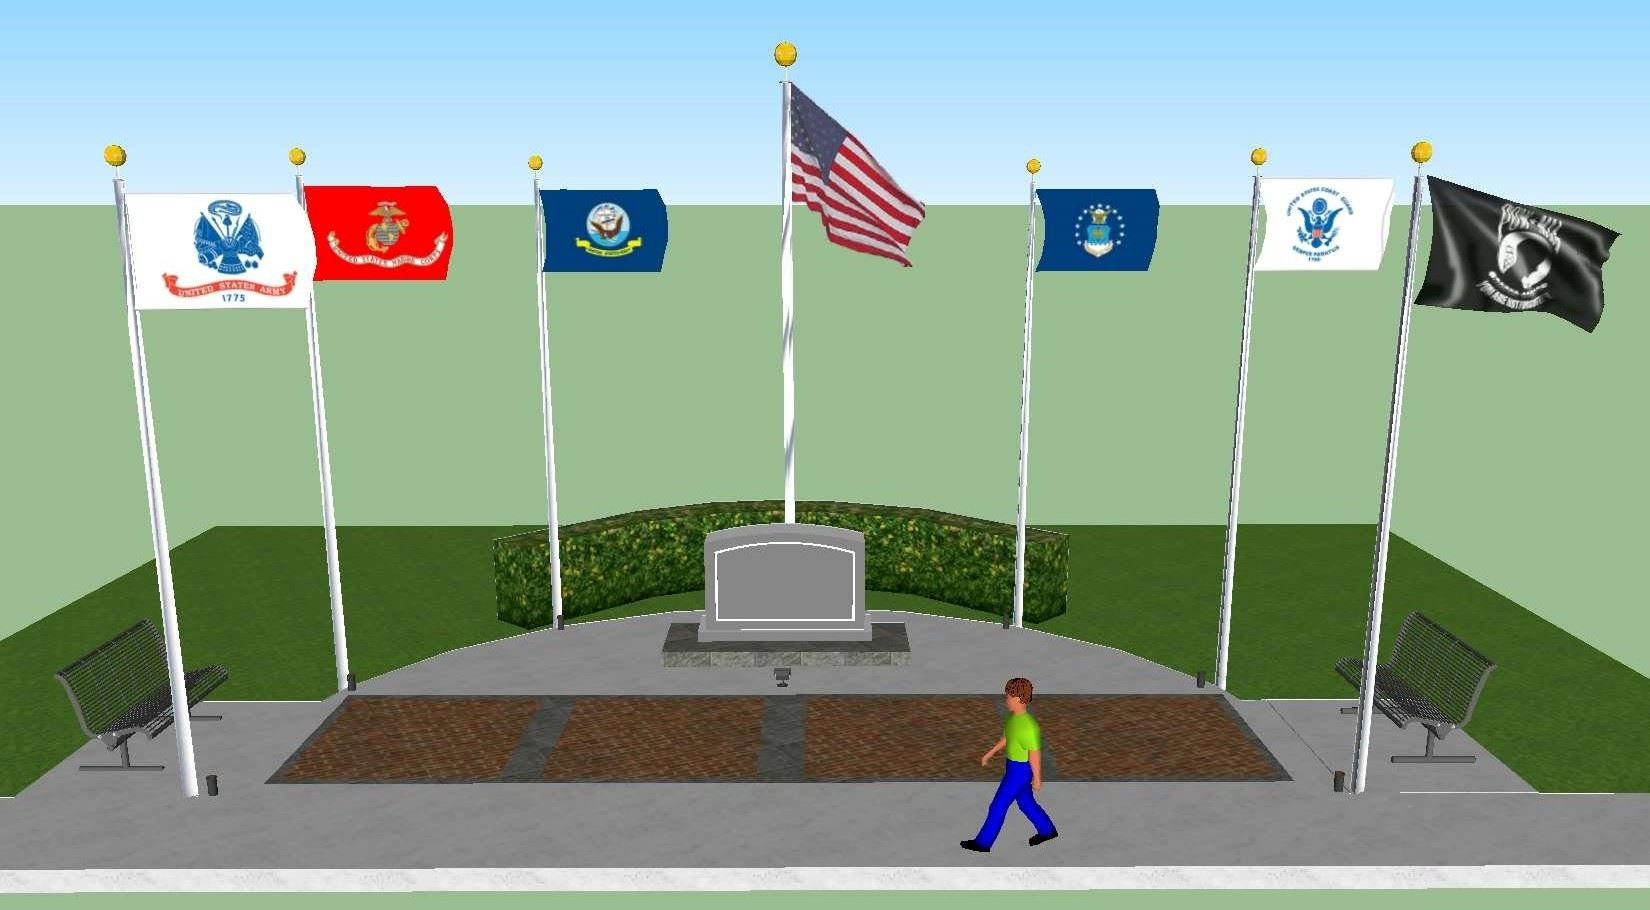 A 3D rendering of the future Veterans Memorial, featuring flags and commemorative stone and brick pa